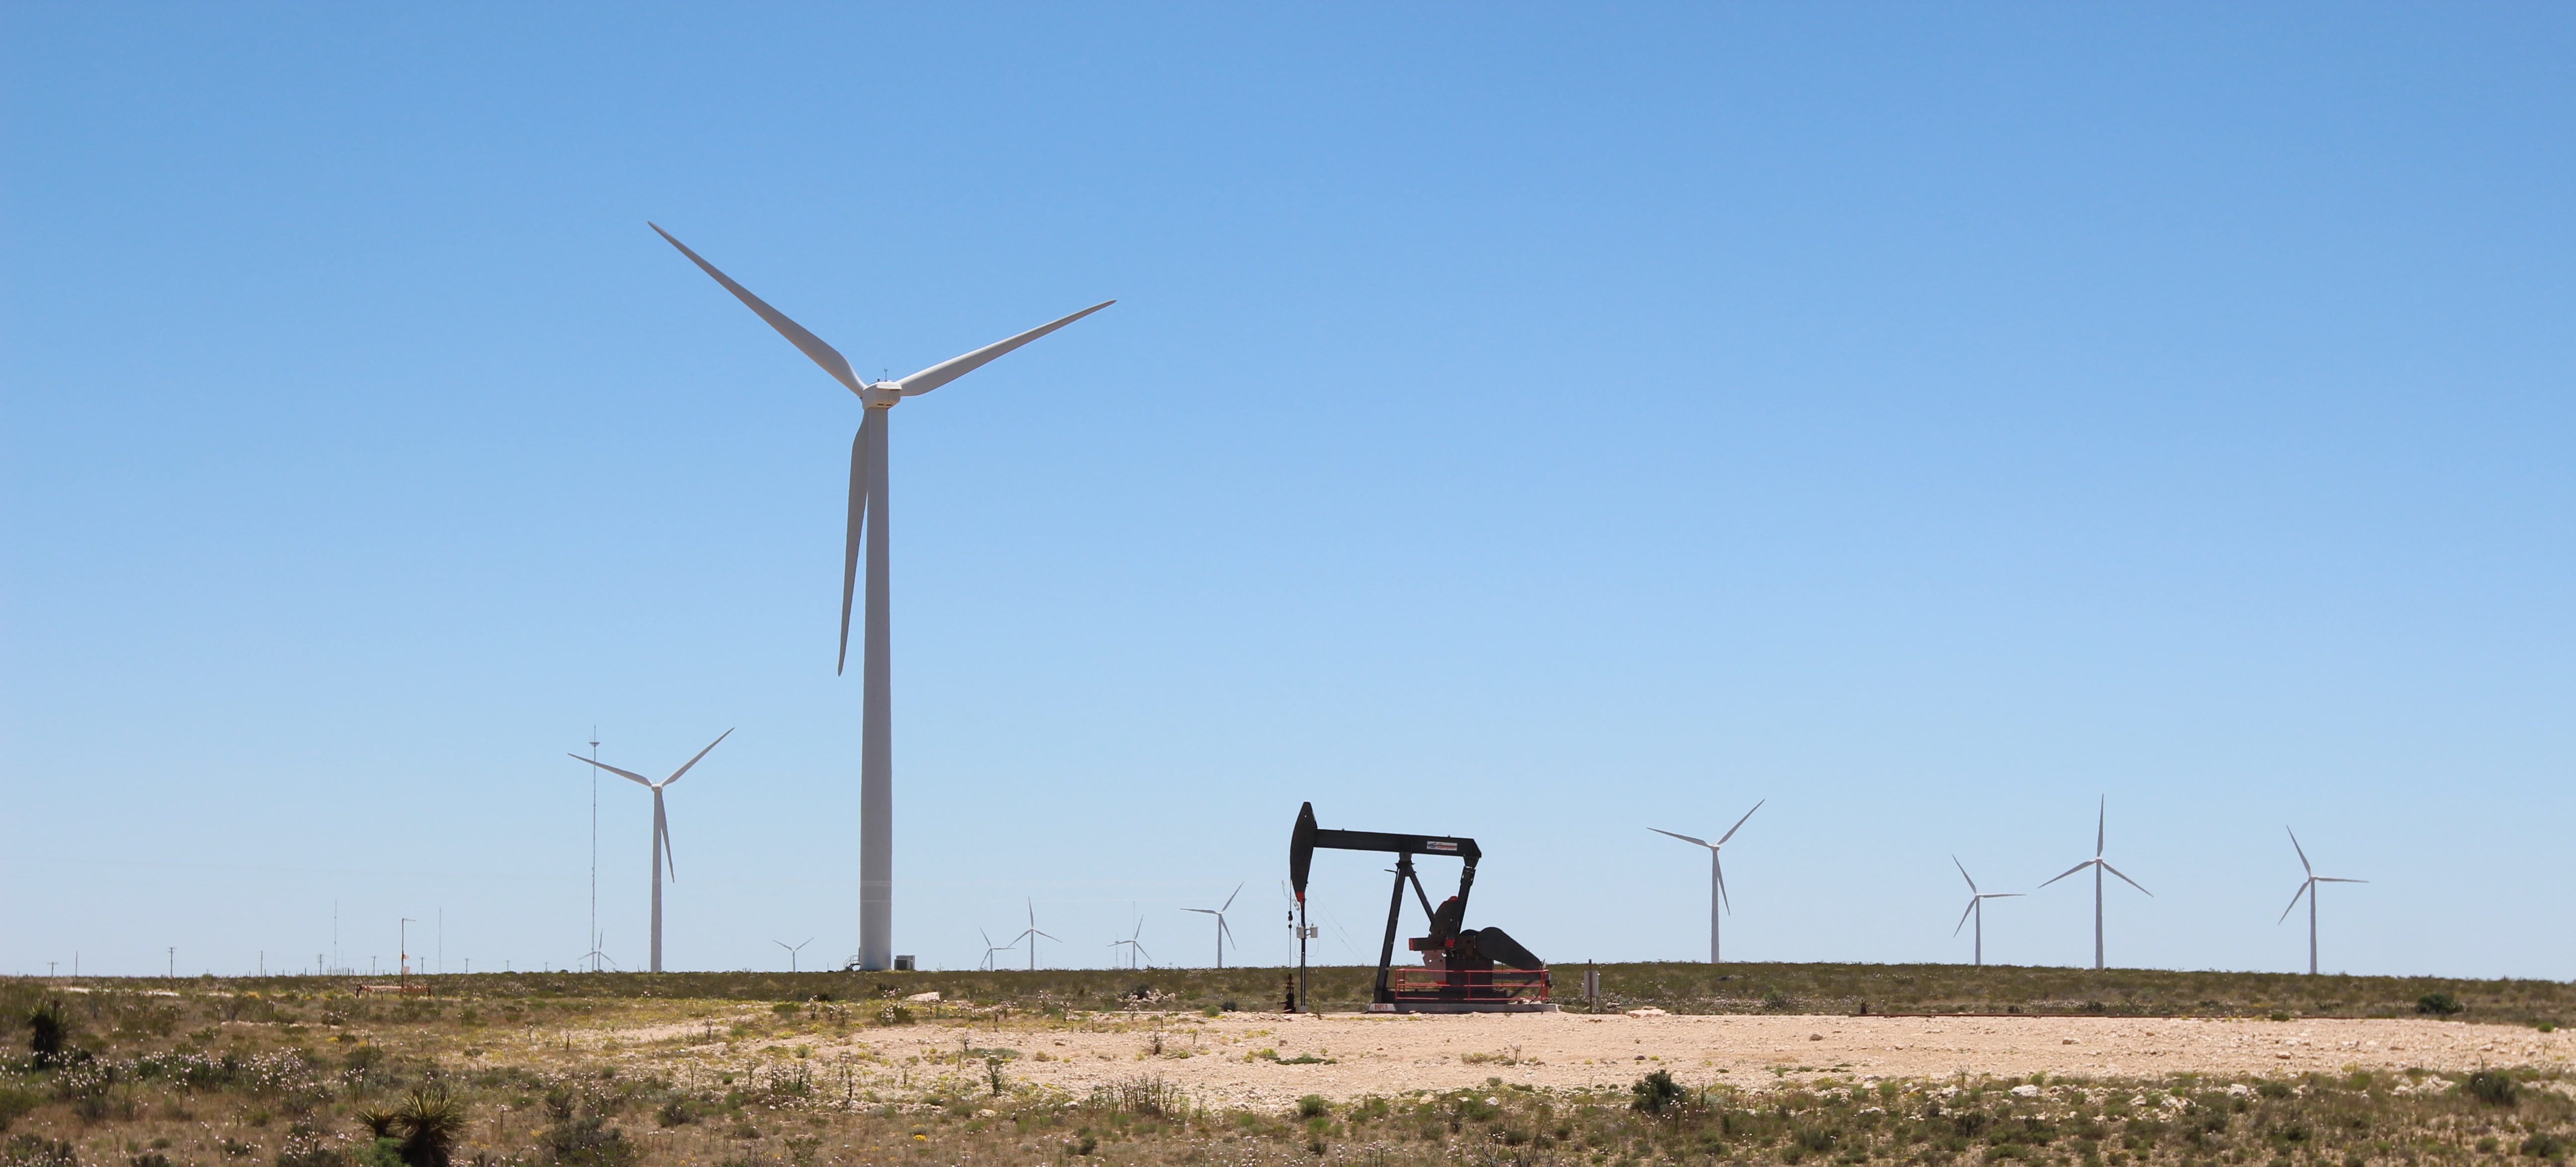 Wind Power s Growth In Texas Triggers Challenge To Renewable